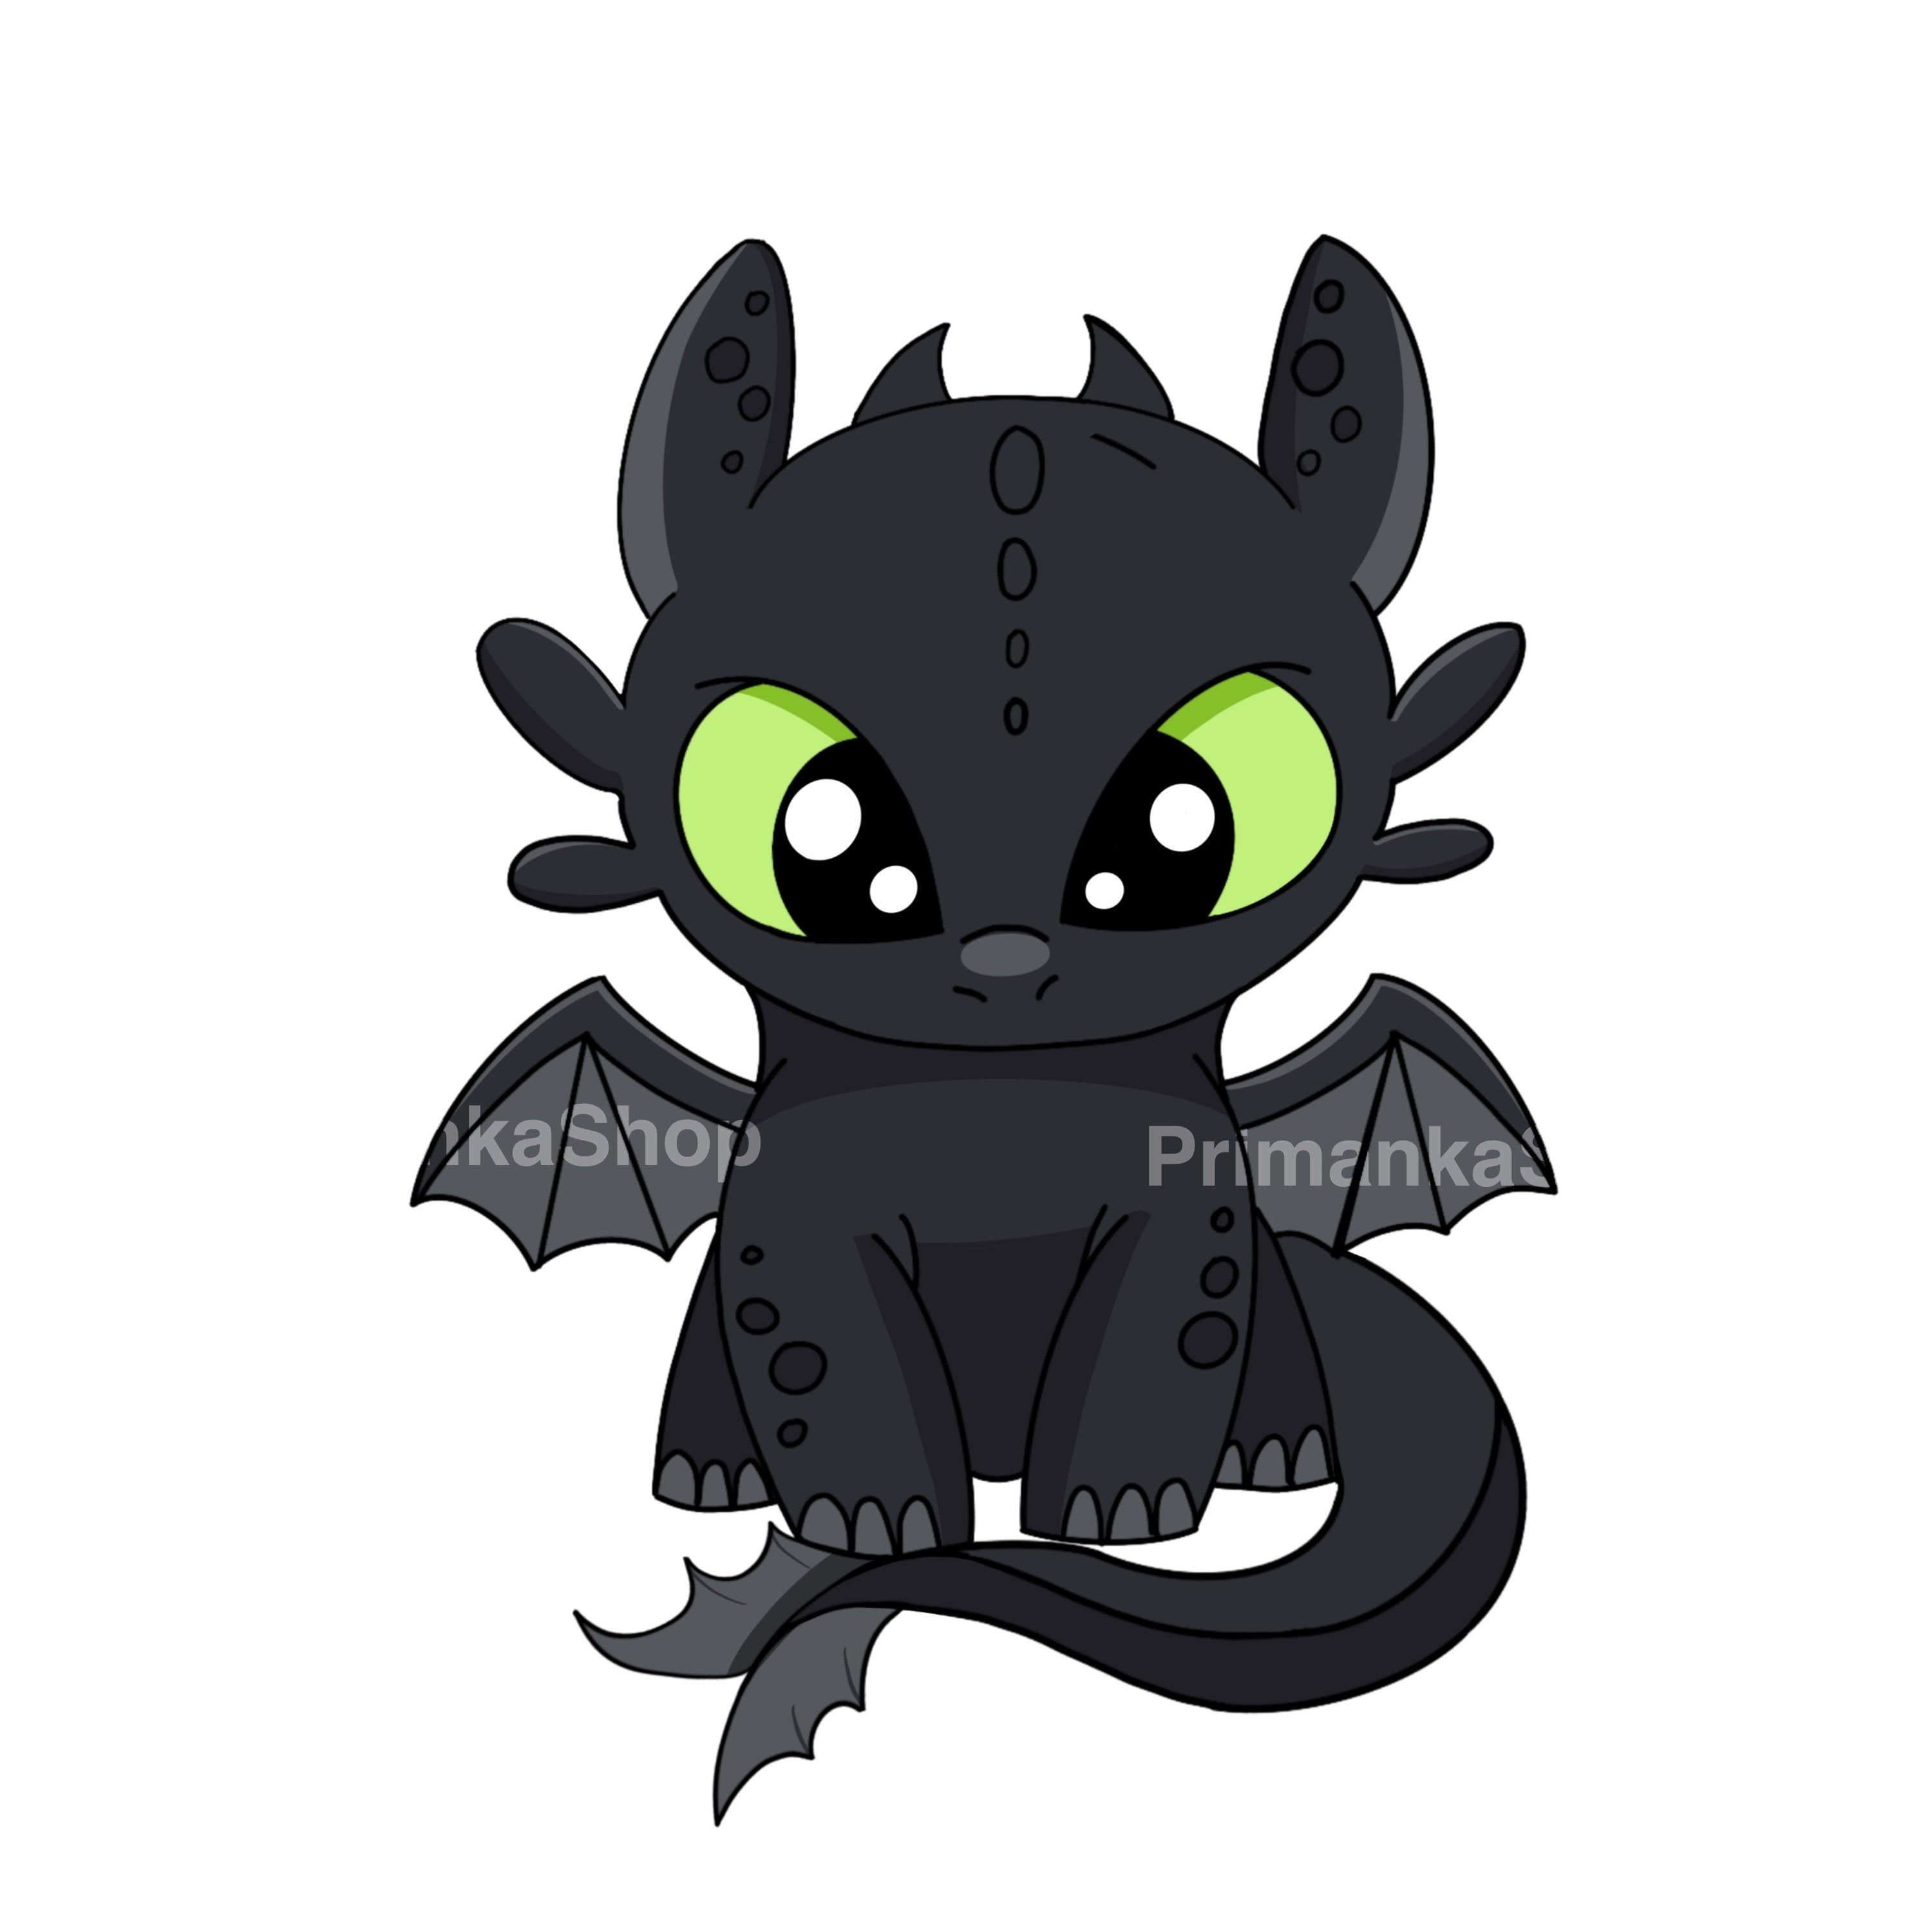 Png Toothless Light Fury How To Train Your Dragon Etsy Cartoon Dragon How Train Your Dragon Baby Dragon